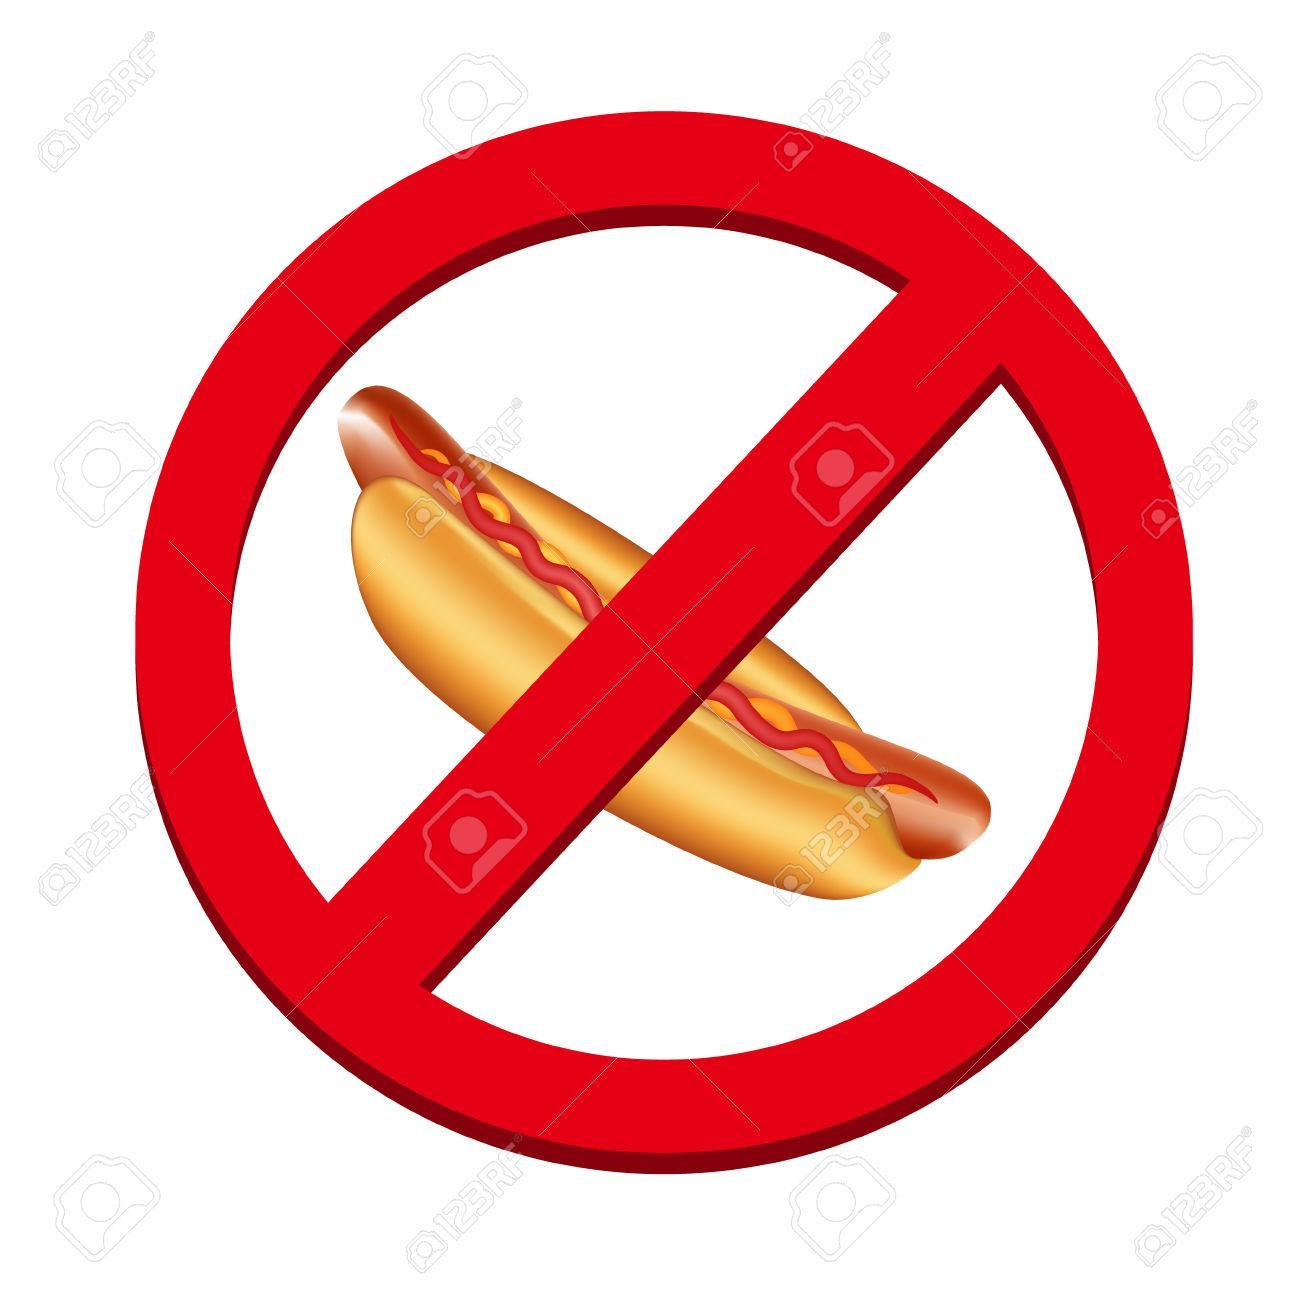 Why doesn't McDonald's sell hotdogs?